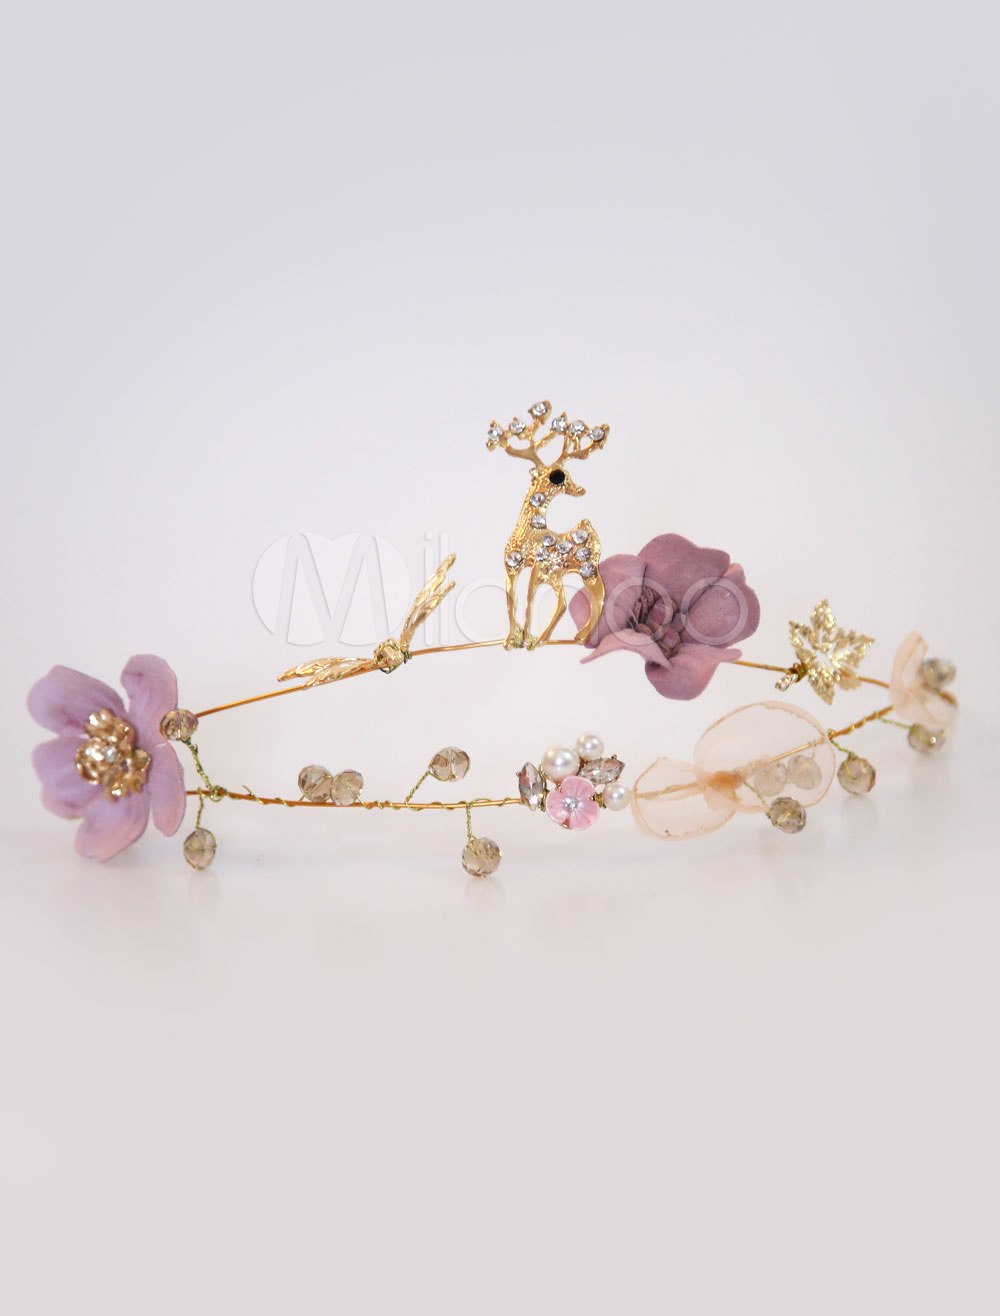 Buy Flower Wedding Headpieces Gold Deer Headband Bridal Hair Accessories for $11.99 in Milanoo store